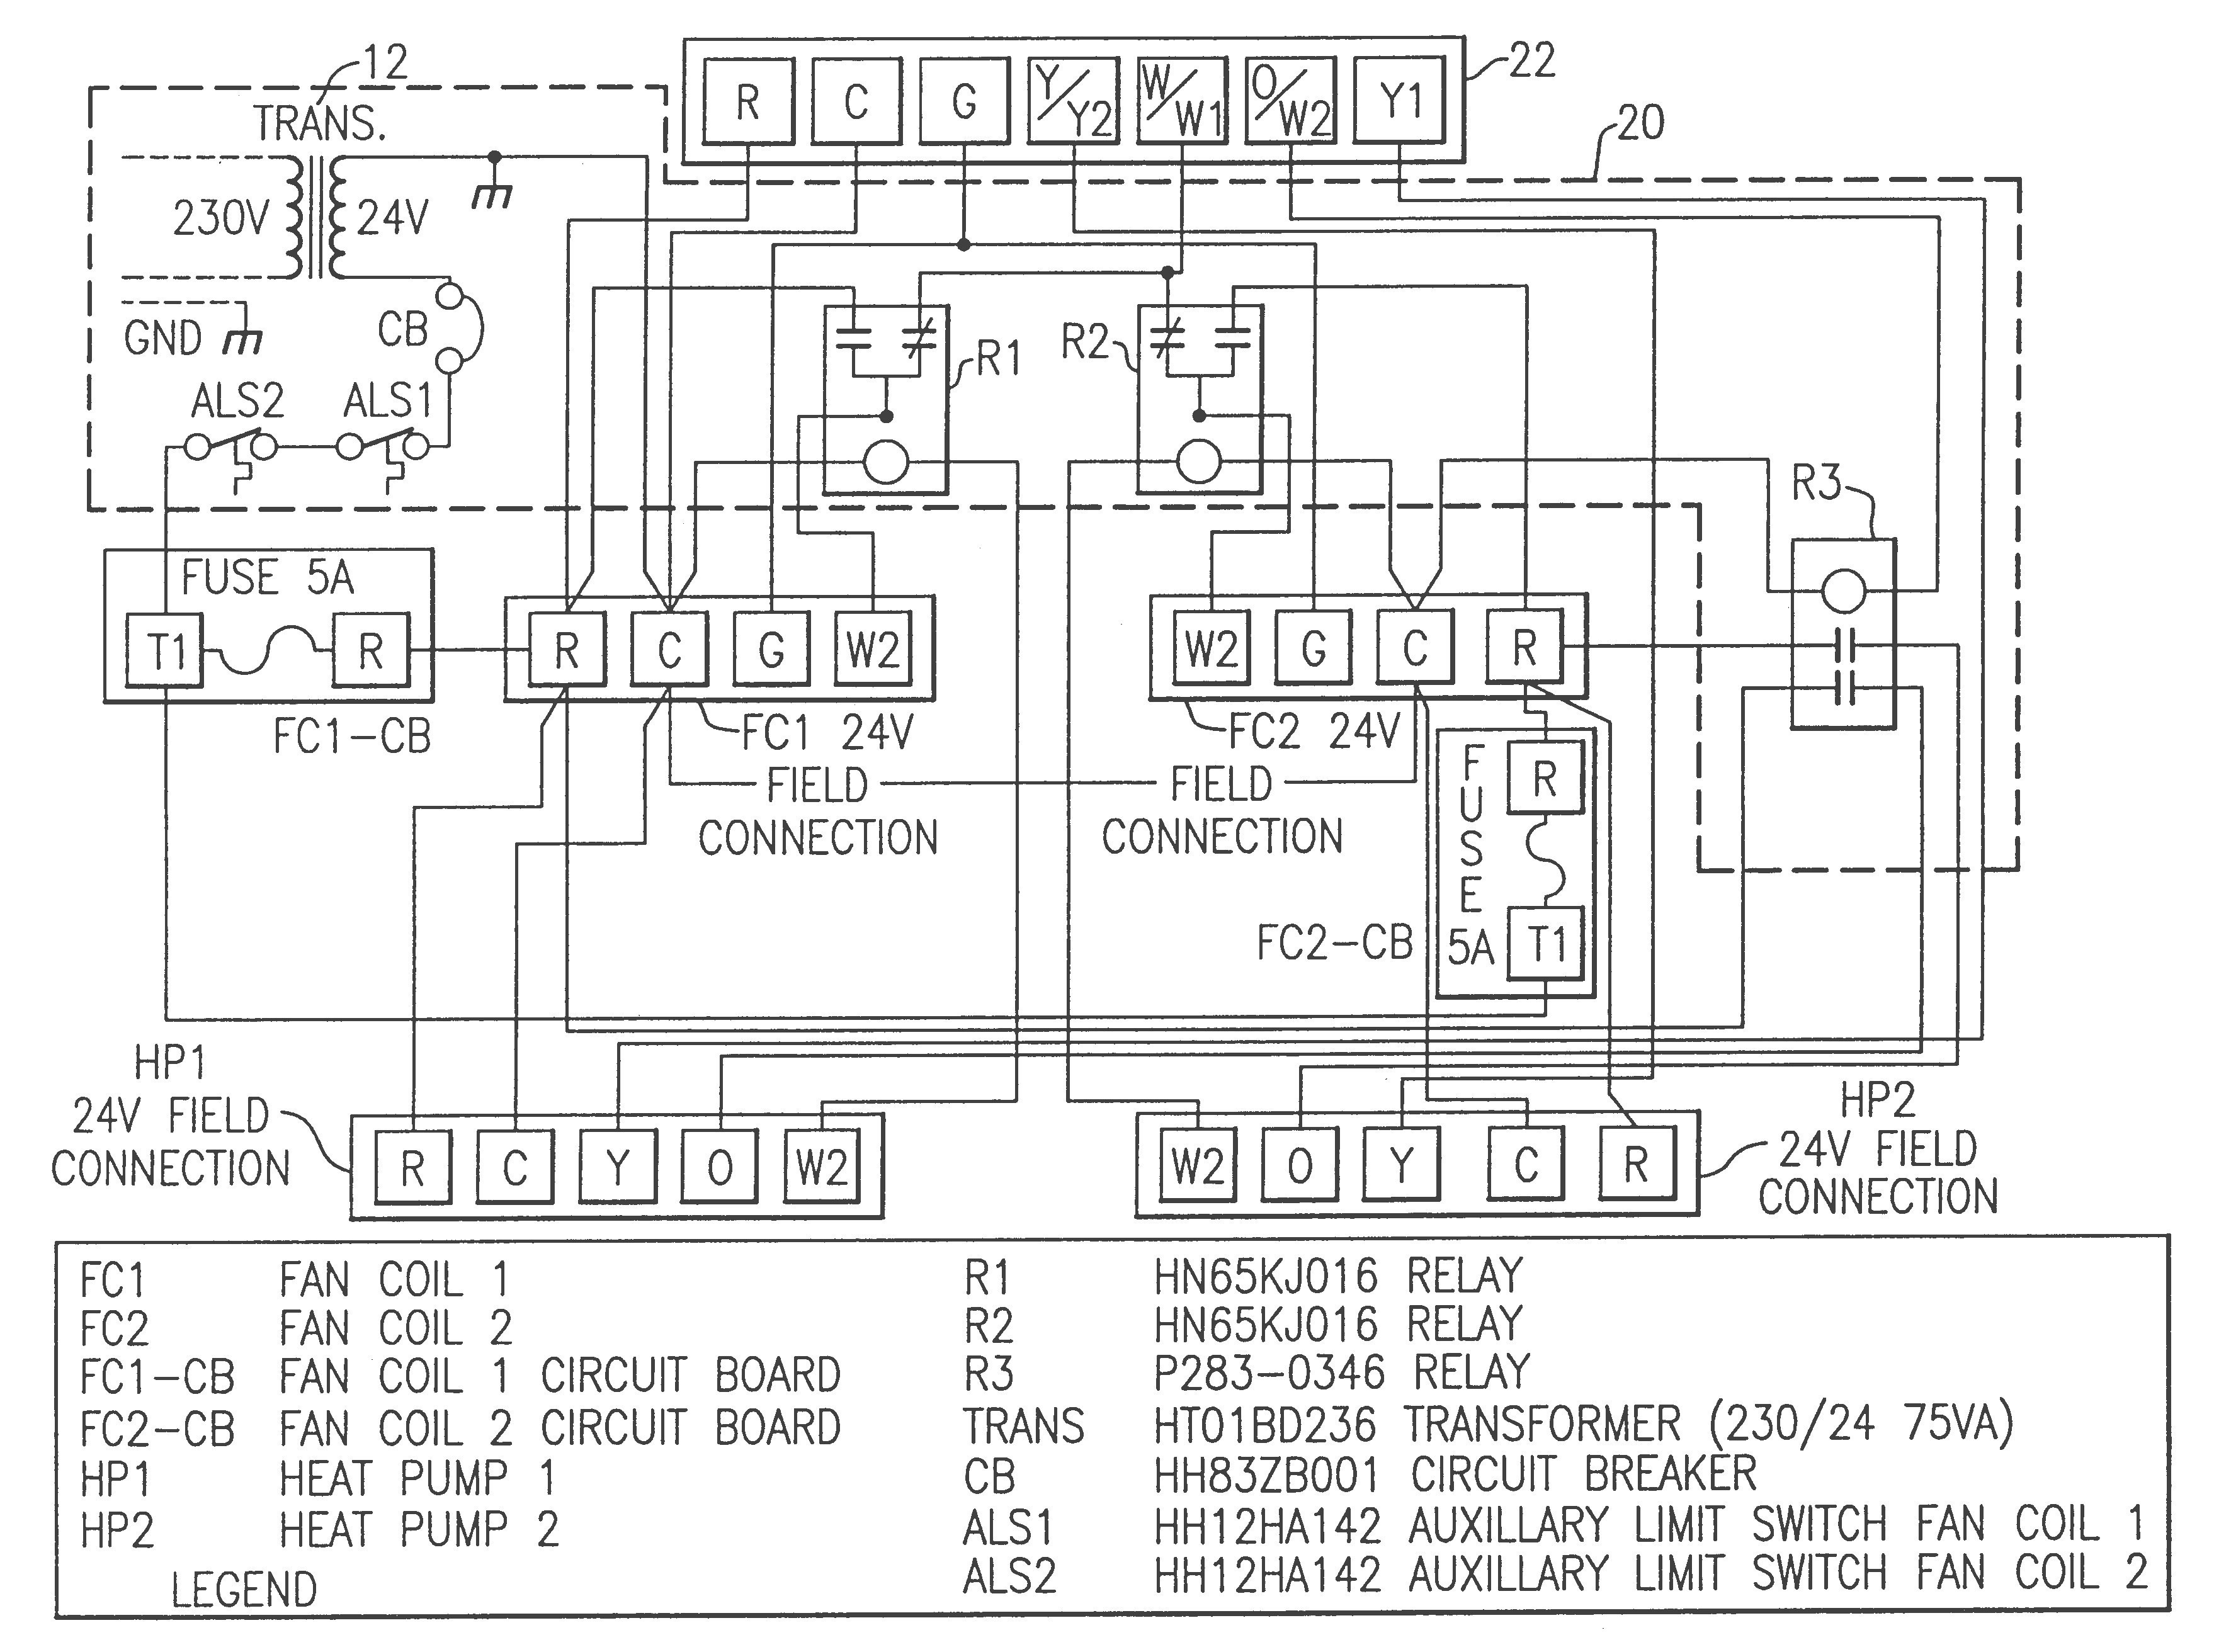 Electric Heat Strip Wiring Diagram Inspirational Package Unit Troubleshooting Free Troubleshooting Examples